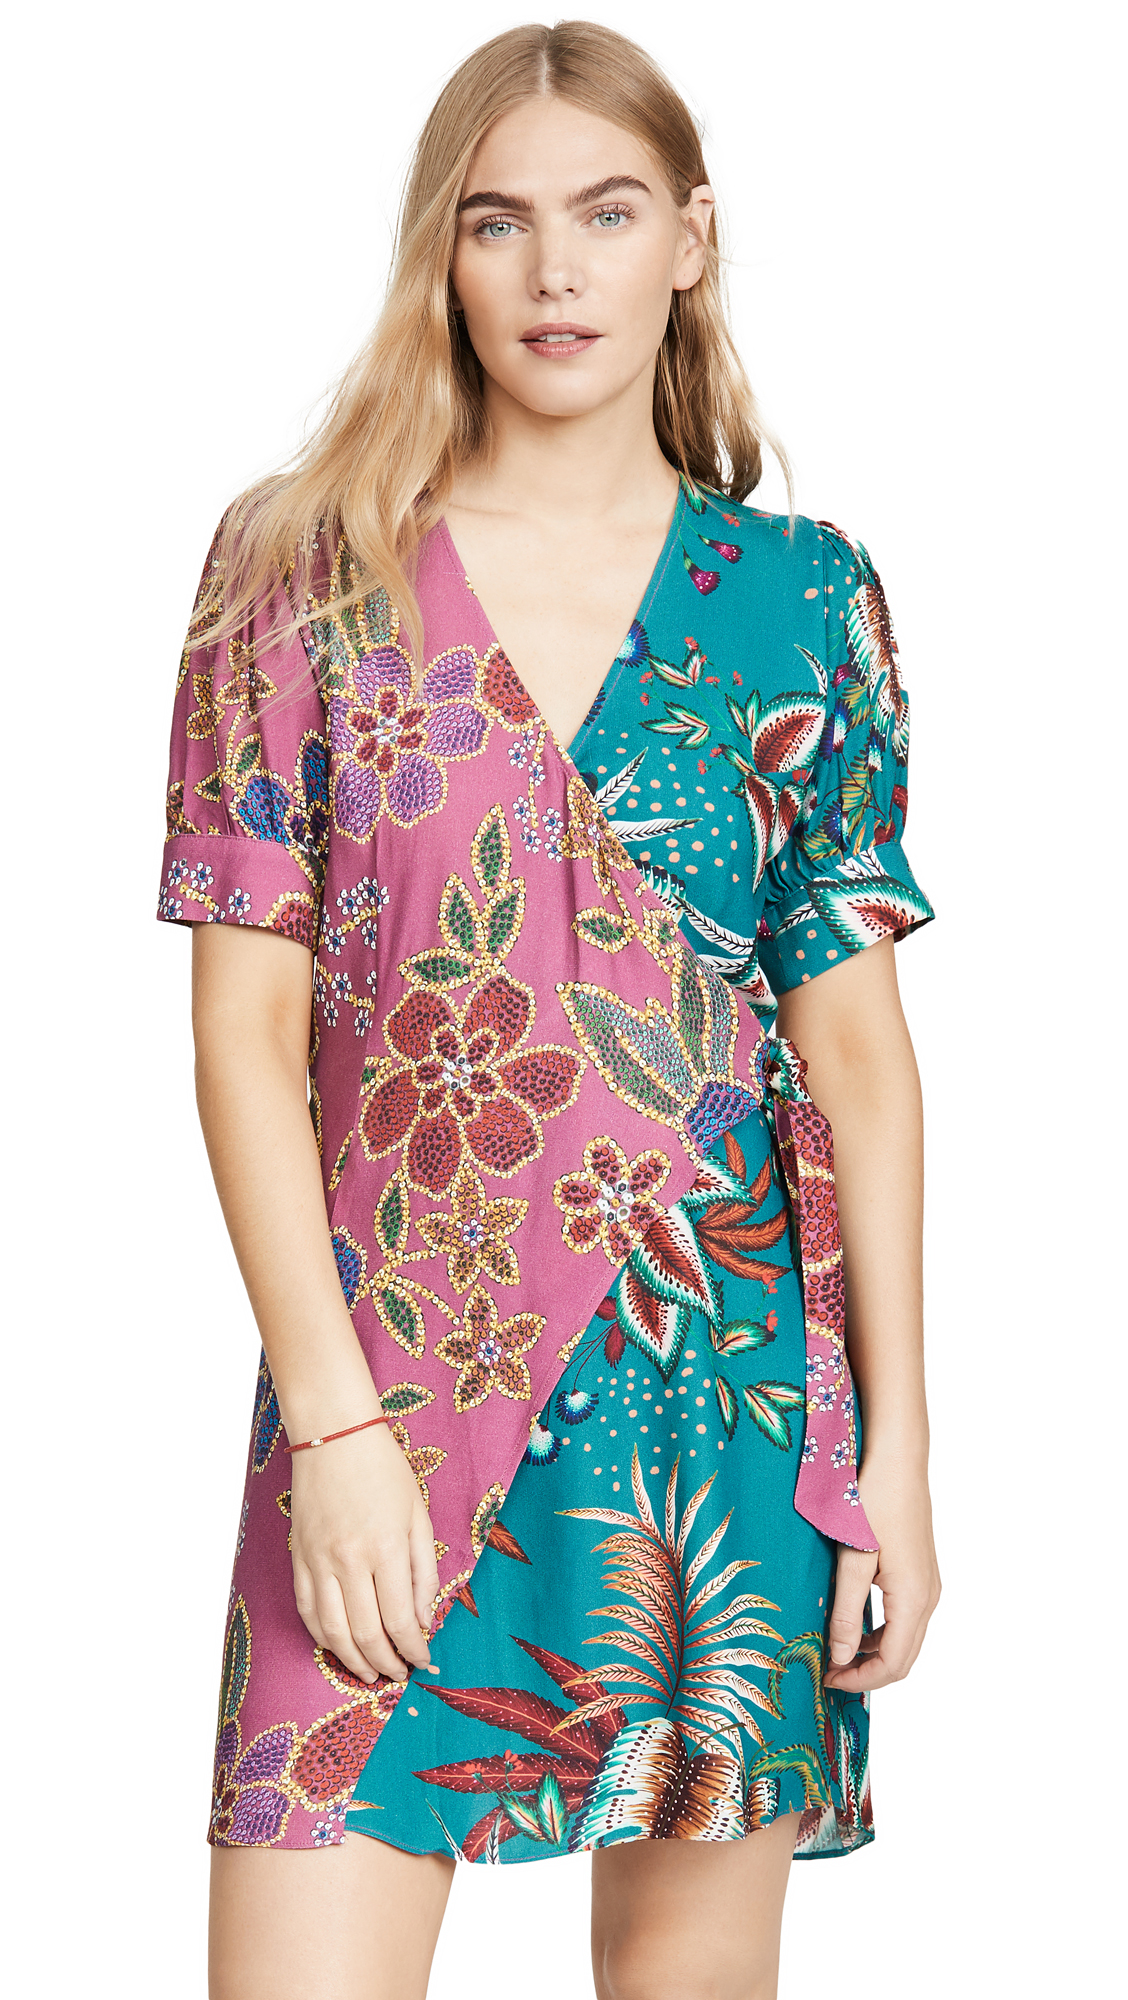 FARM Rio Floral Sparkle Mixed Wrap Dress – 60% Off Sale